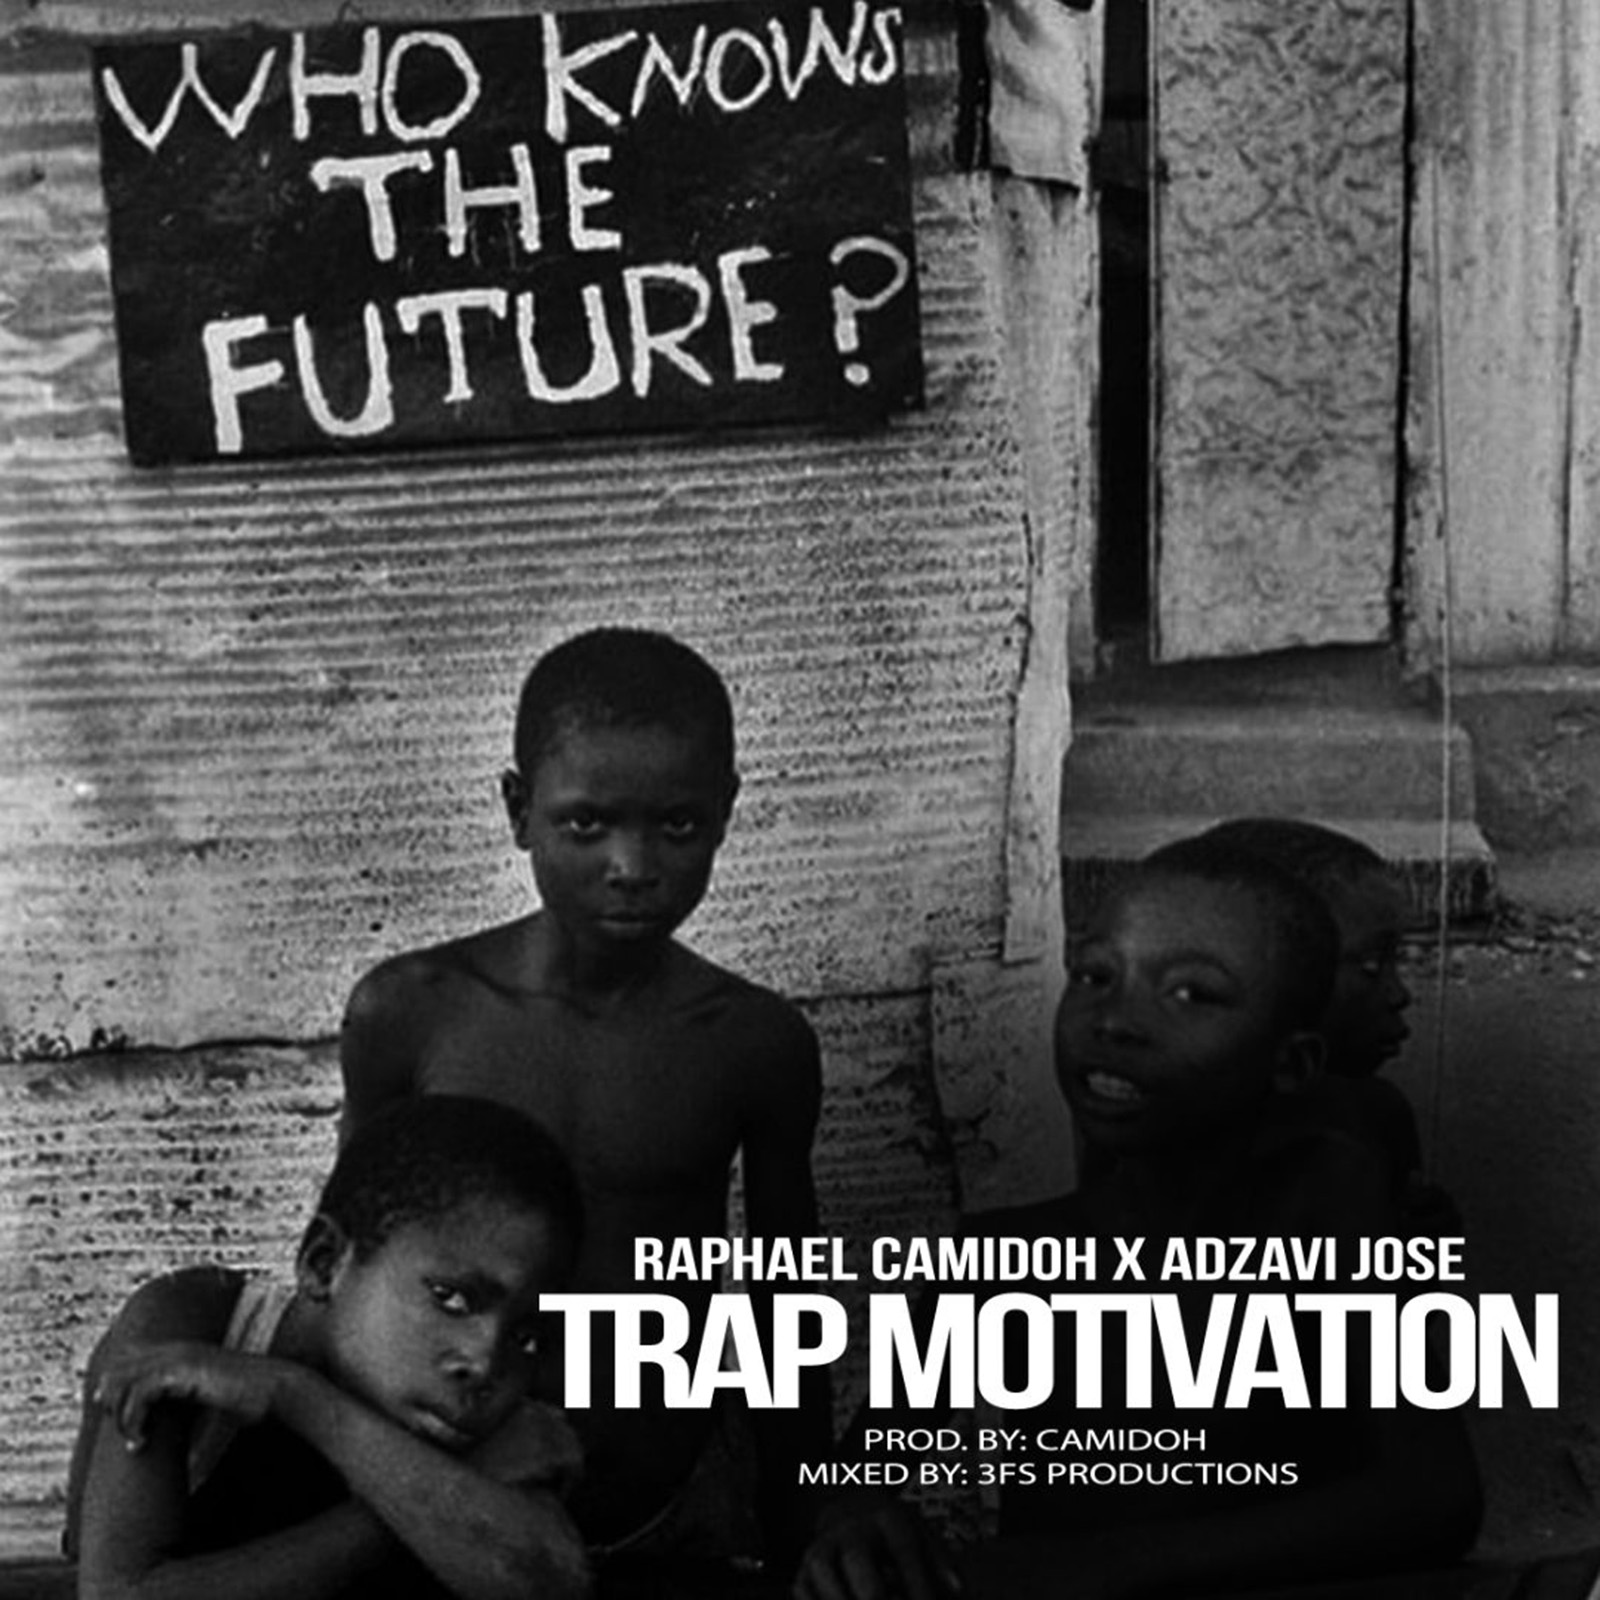 Trap Motivation by Raphael Camidoh & Adzavi Jose